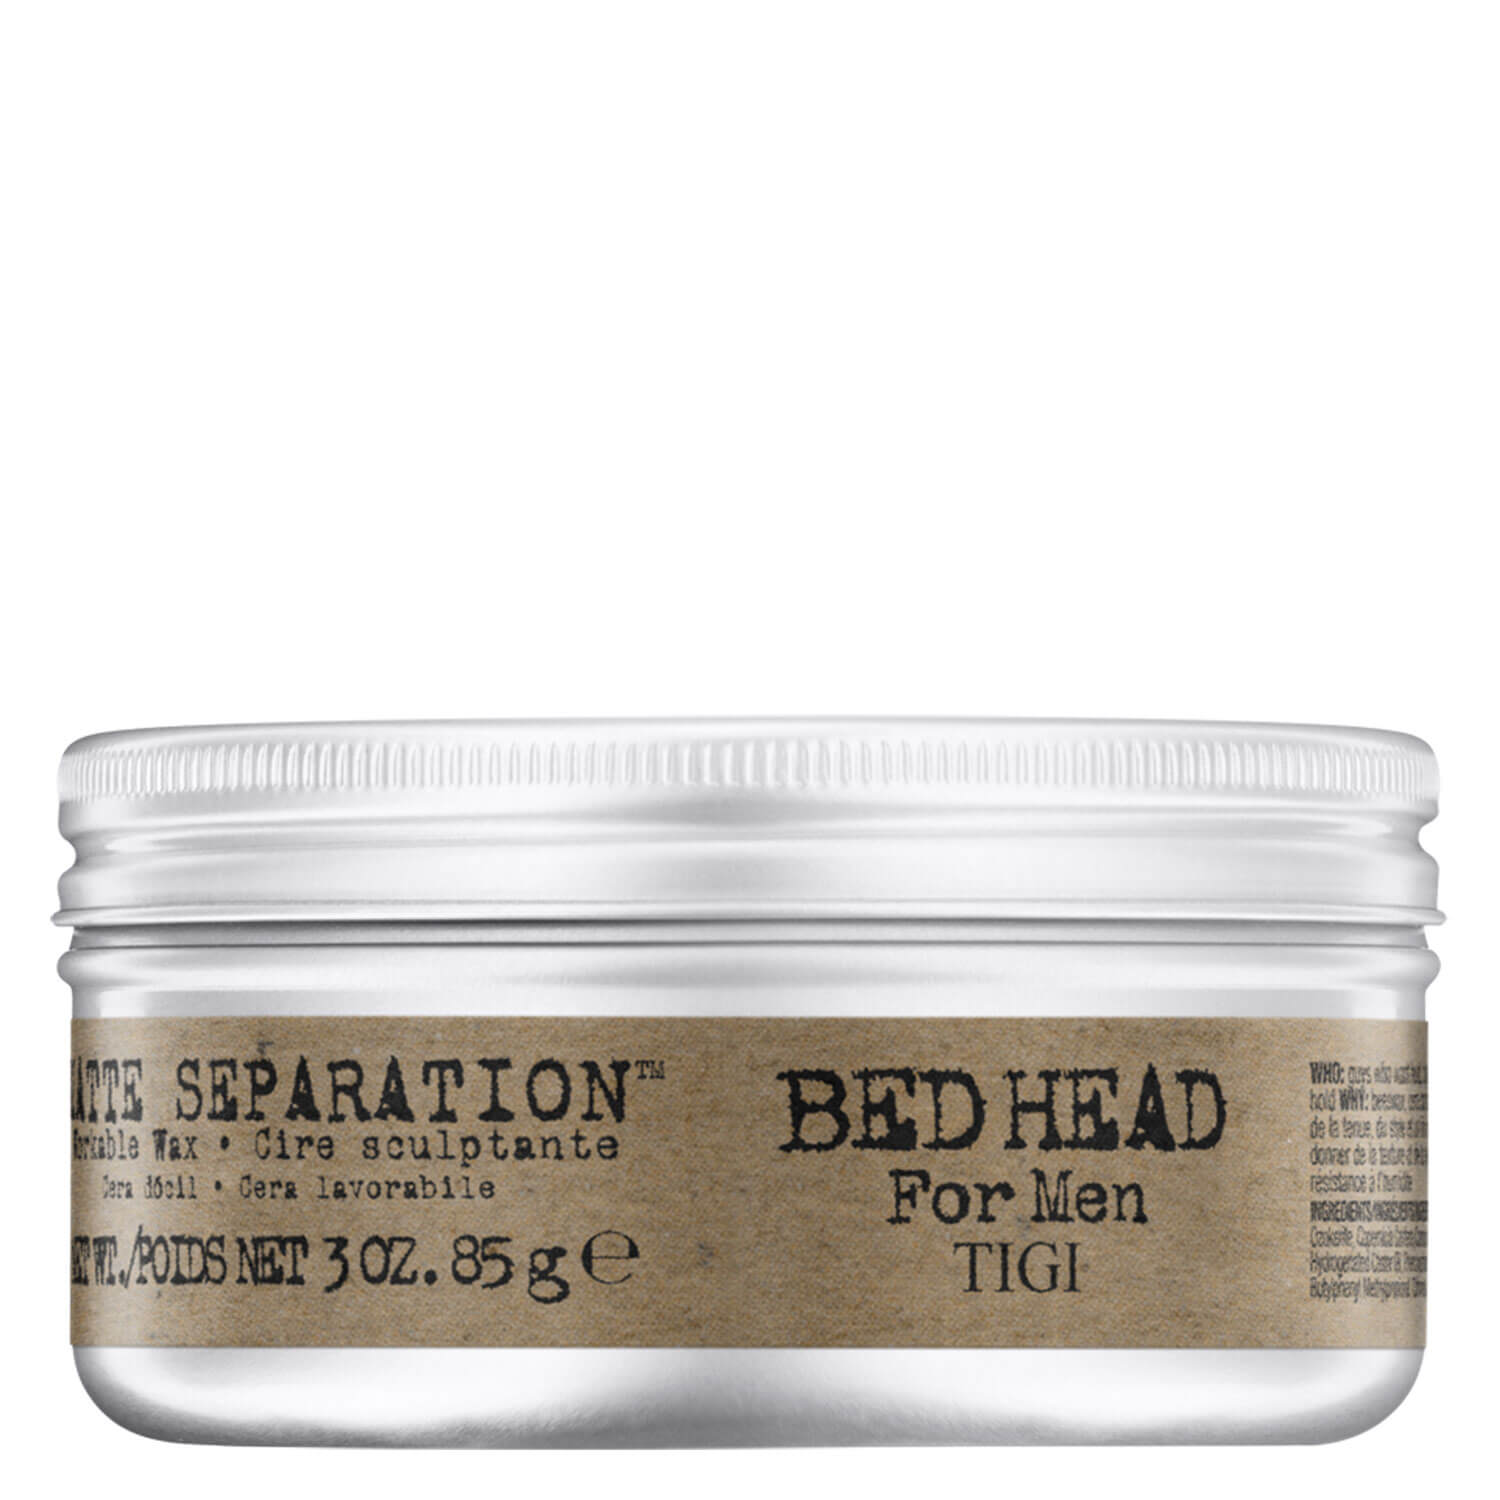 Bed Head For Men - Matte Separation - 85g